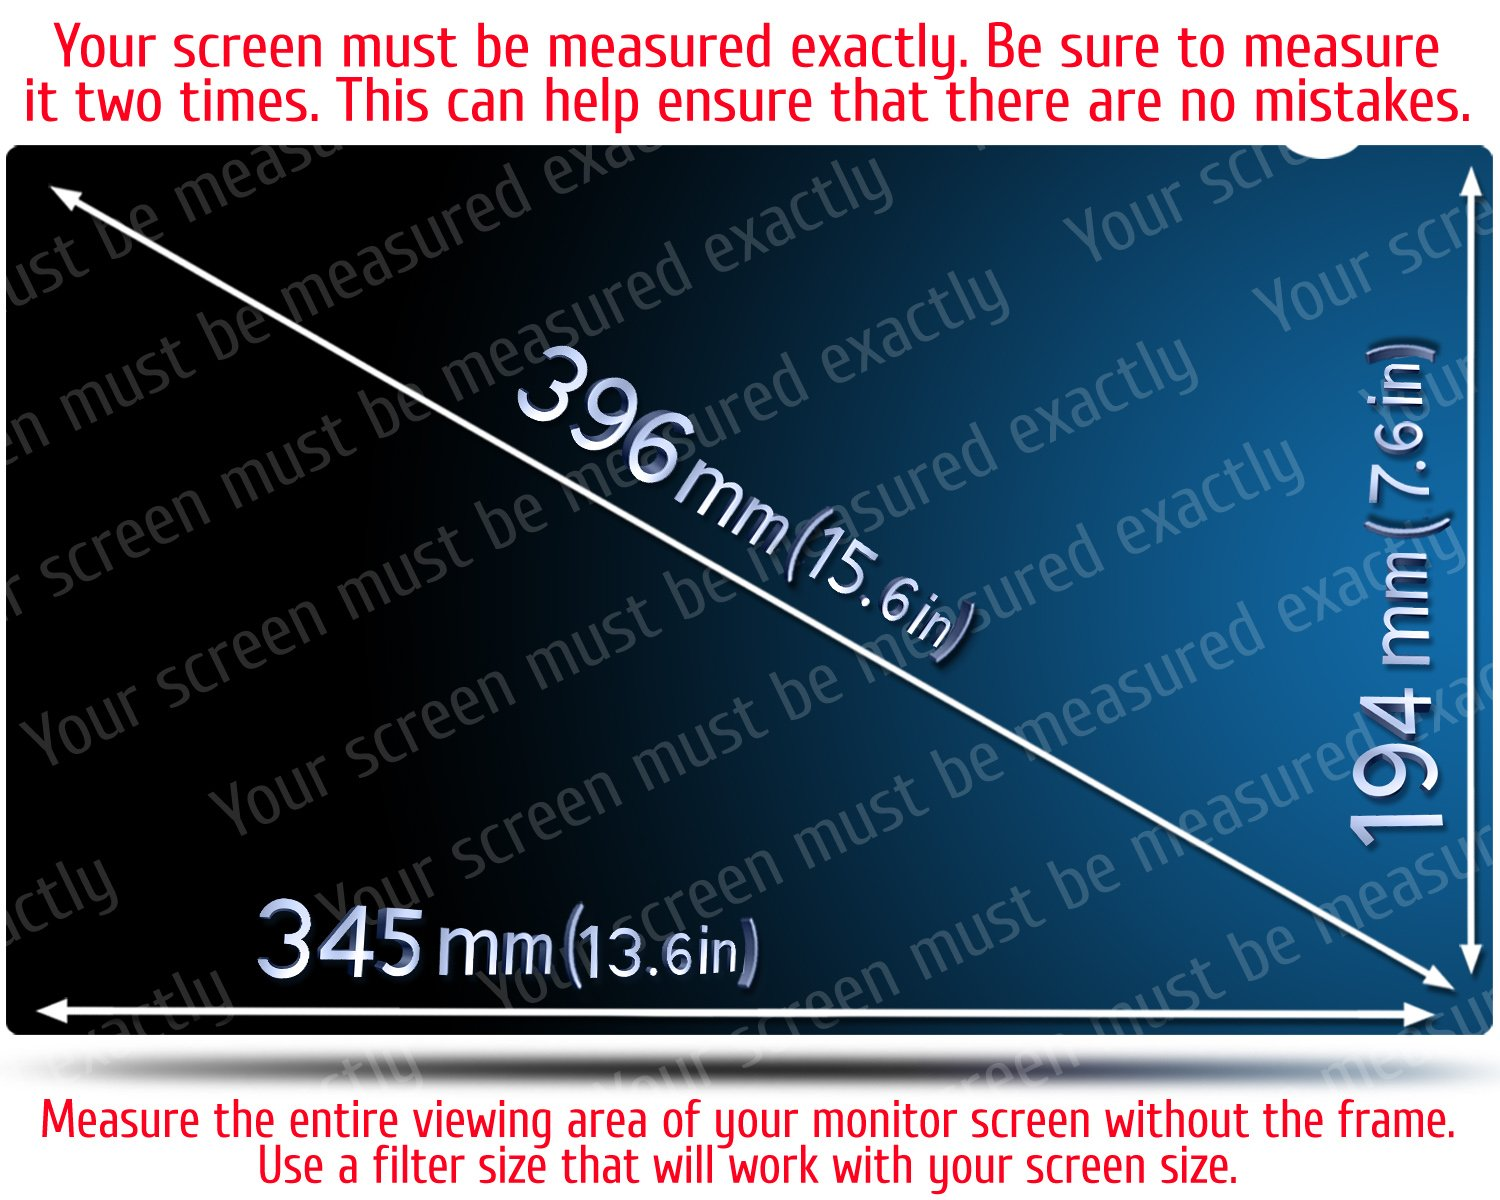 15.6 Inch Computer Privacy Screen Filter for Widescreen Laptop - Notebook - Anti-Glare - Anti-Scratch Protector Film for Data confidentiality - 16:9 Aspect Ratio. by VINTEZ (Image #2)